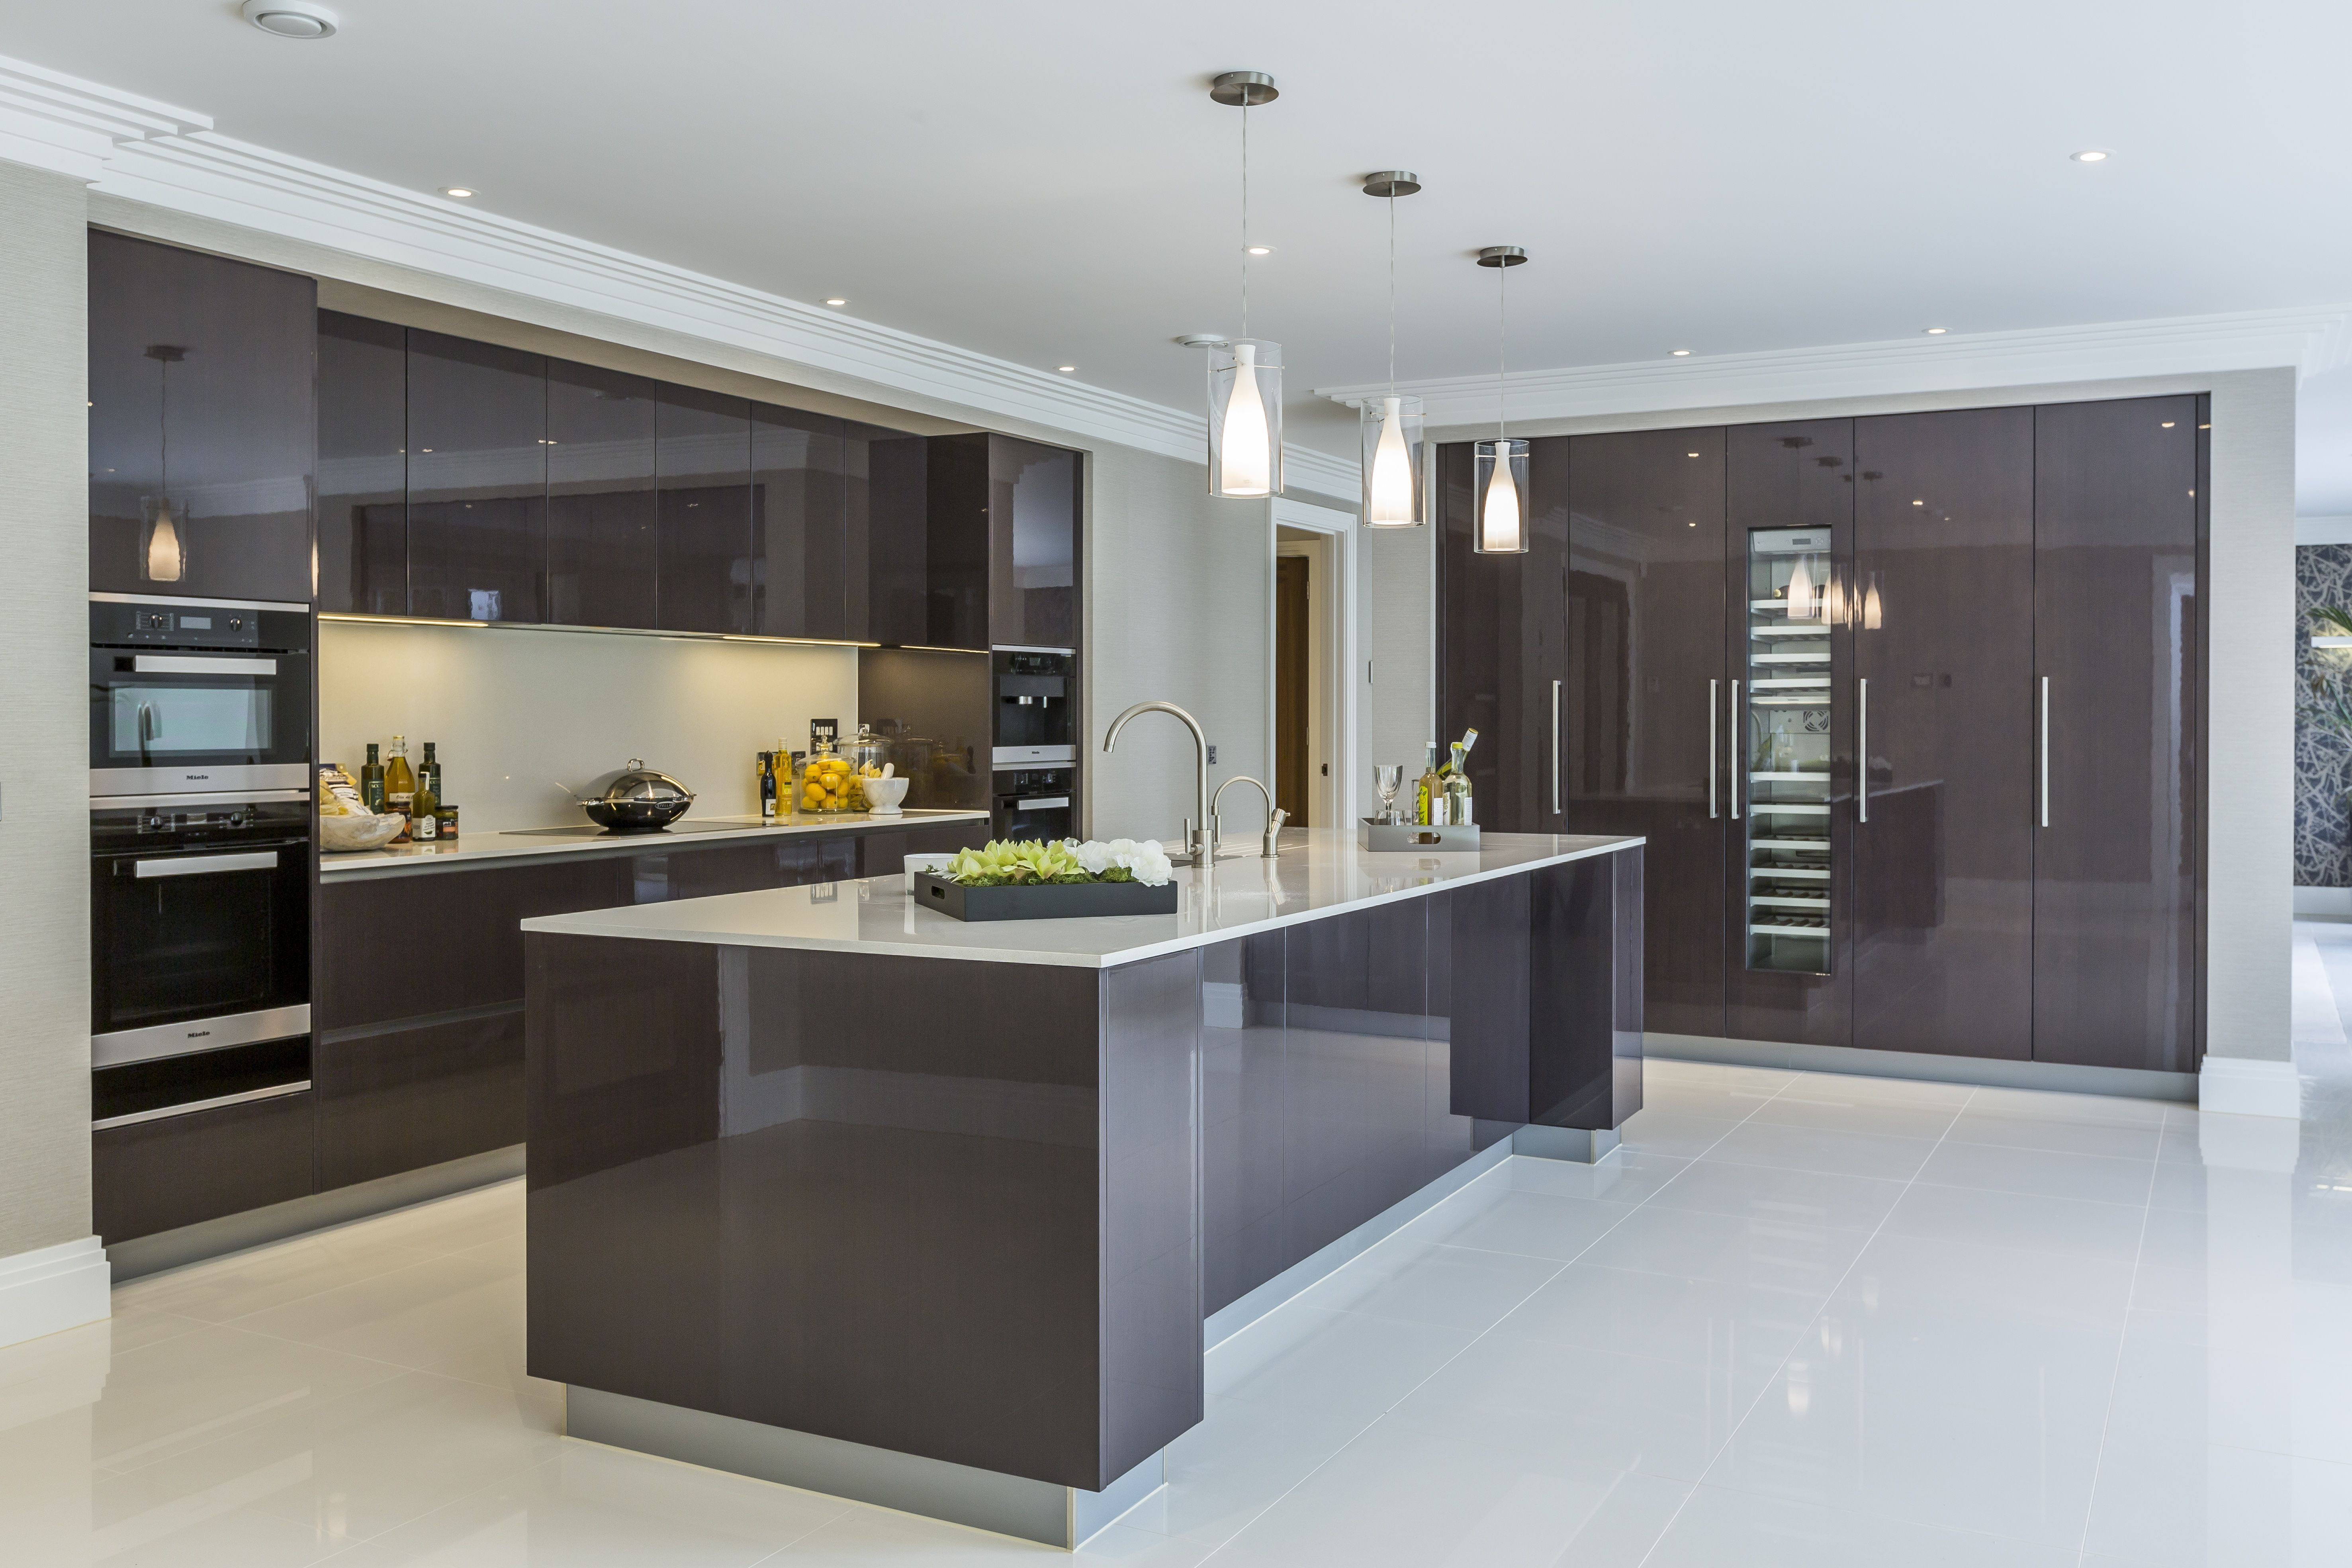 High gloss kitchens extreme contemporary minimal high gloss kitchen design in private mansion. TGPYUOM